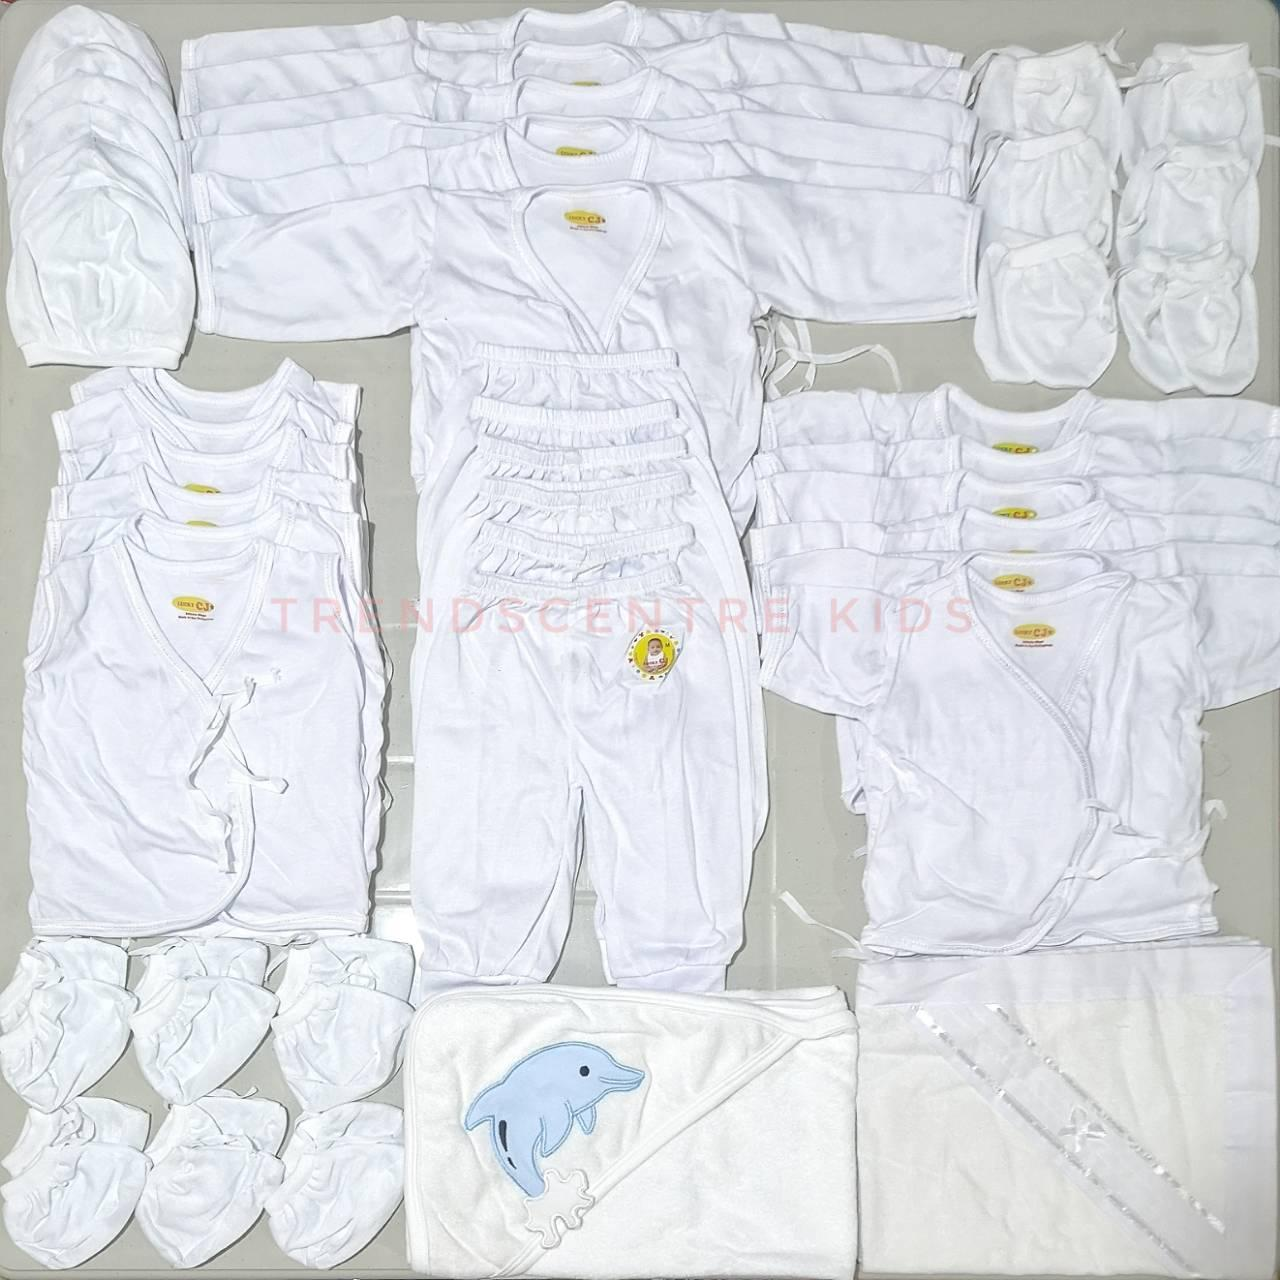 Newborn Clothes for sale - Newborn Baby Clothes Online